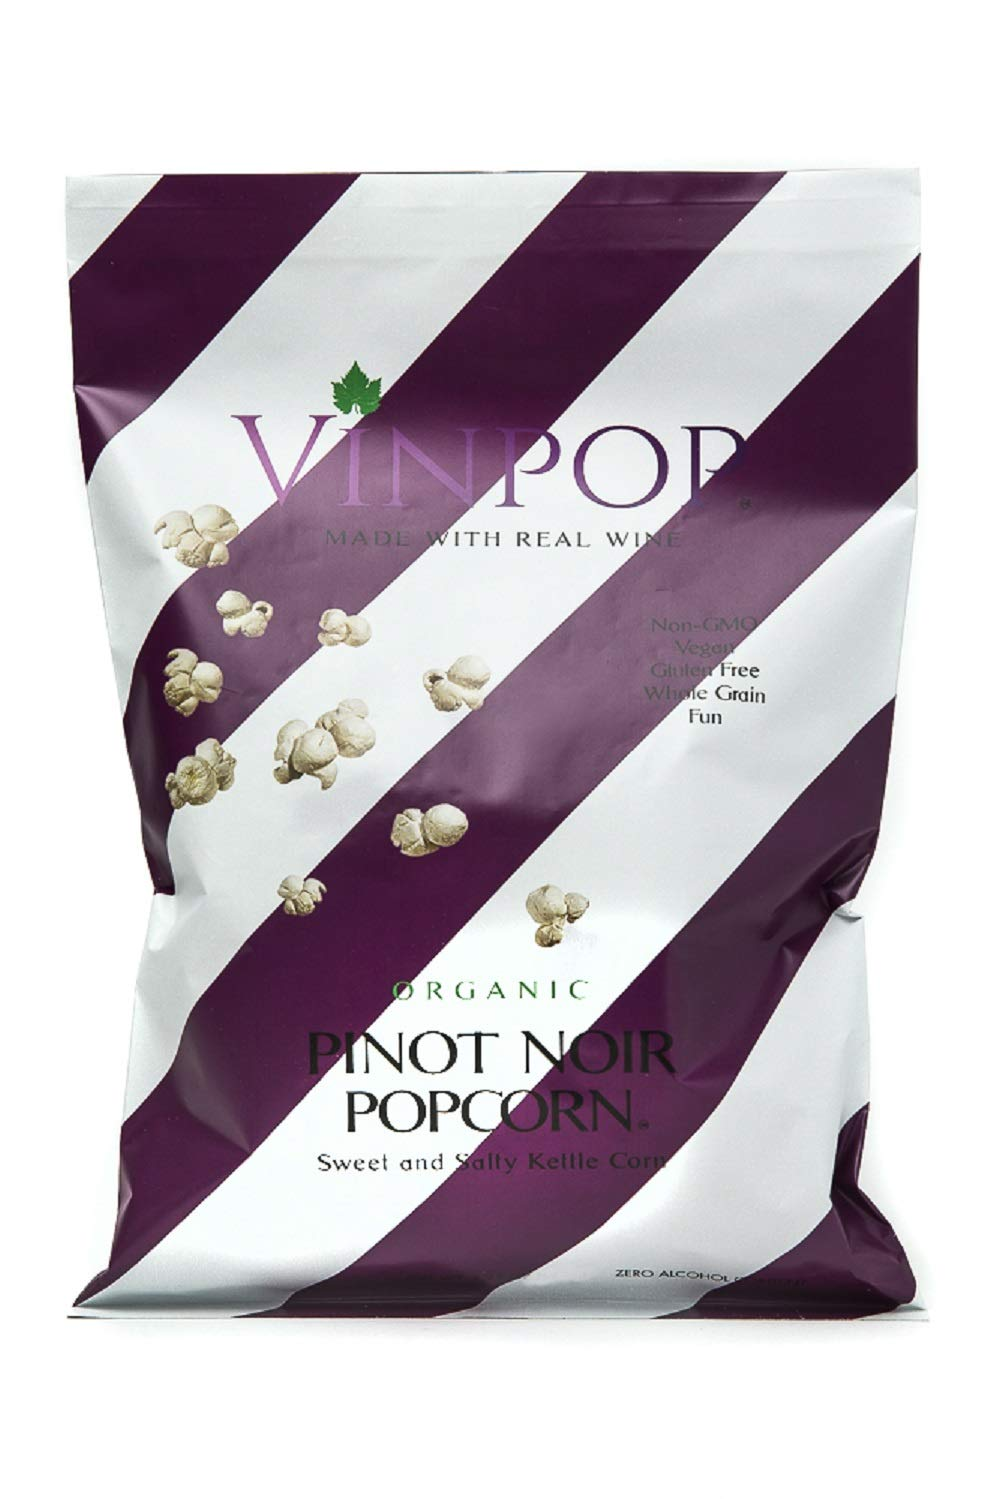 VINPOP Organic Popcorn - Pinot Noir Bag Ounce 2 Challenge 5 popular the lowest price of Japan ☆ 12 Pack Made